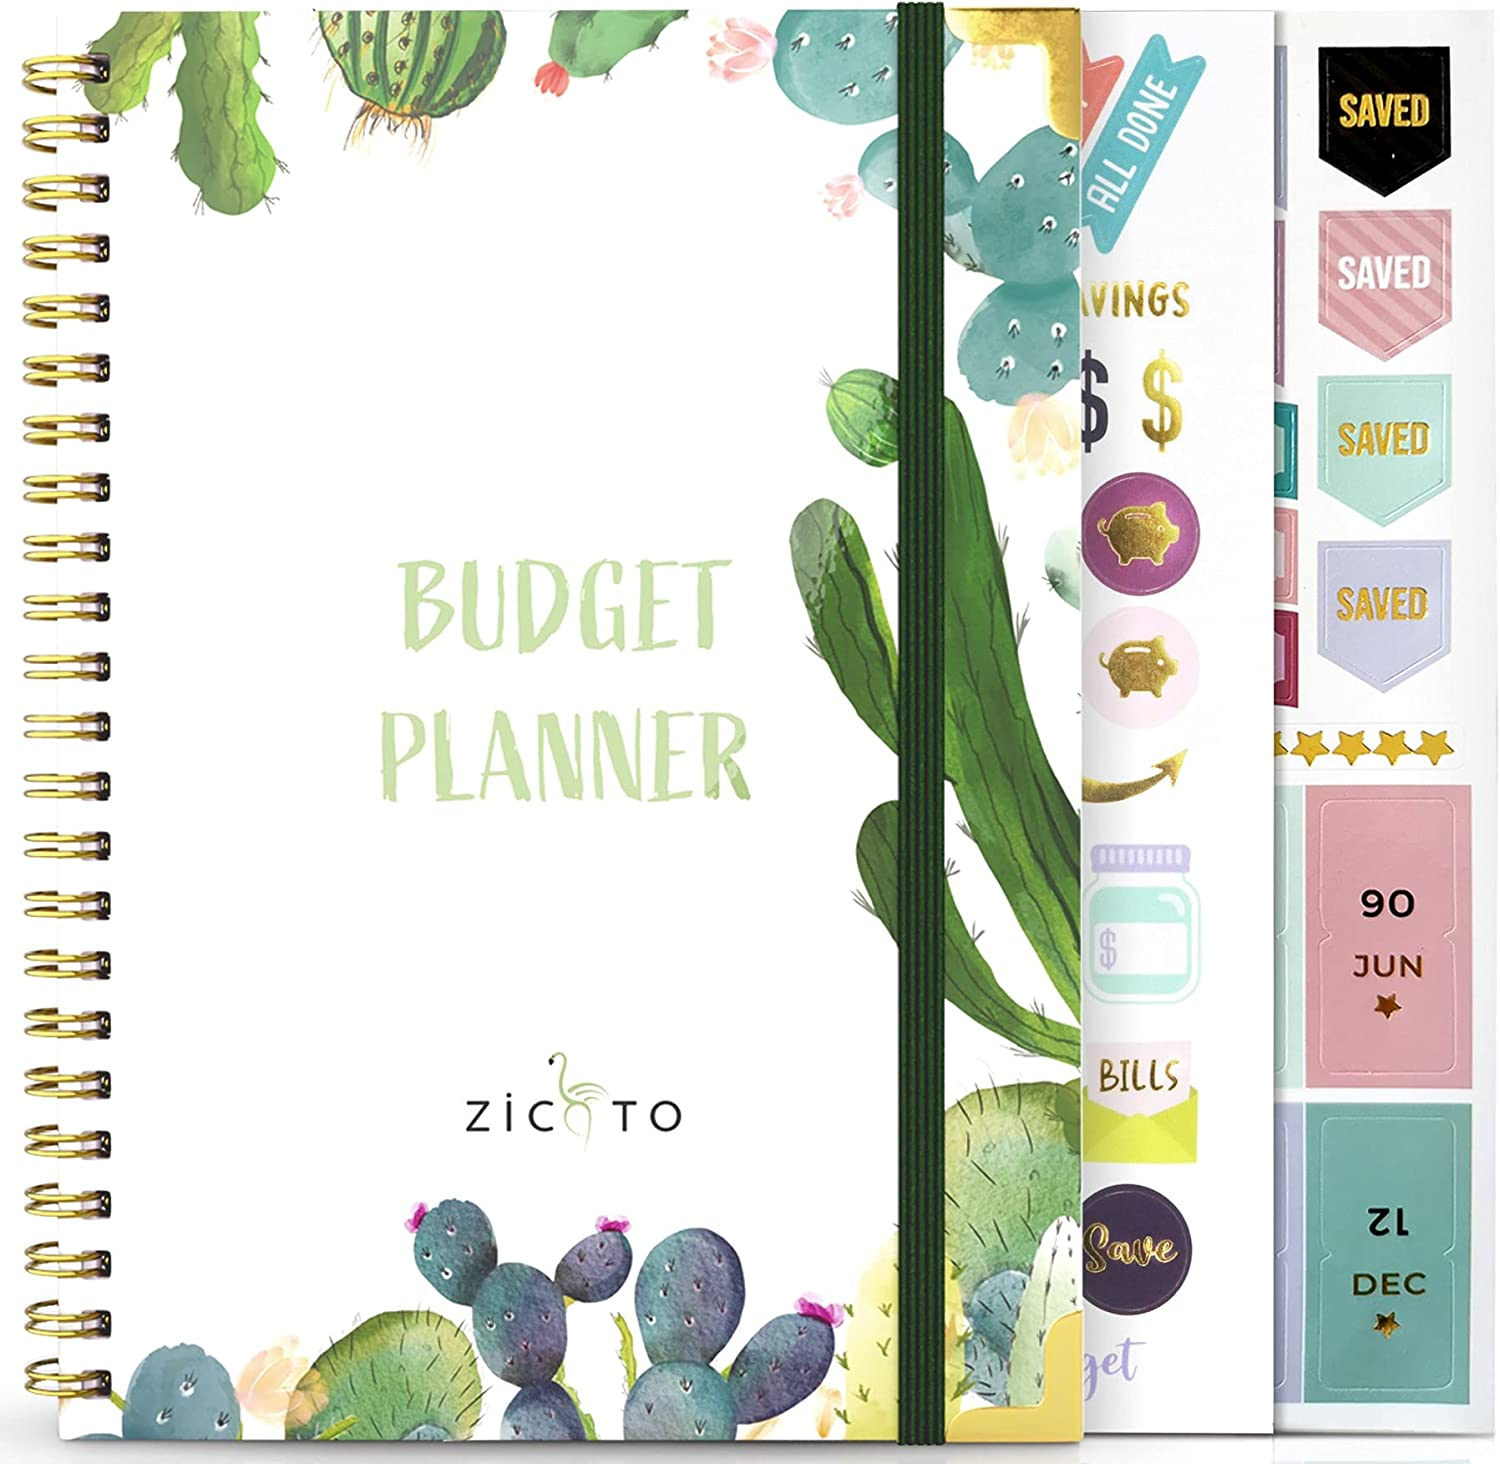 Simplified Monthly Budget Planner - Easy Use 12 Month Financial Organizer with Expense Tracker Notebook - Undated Monthly Money Budgeting Book For 2021 & 2022 That Manages Your Finances Effectively